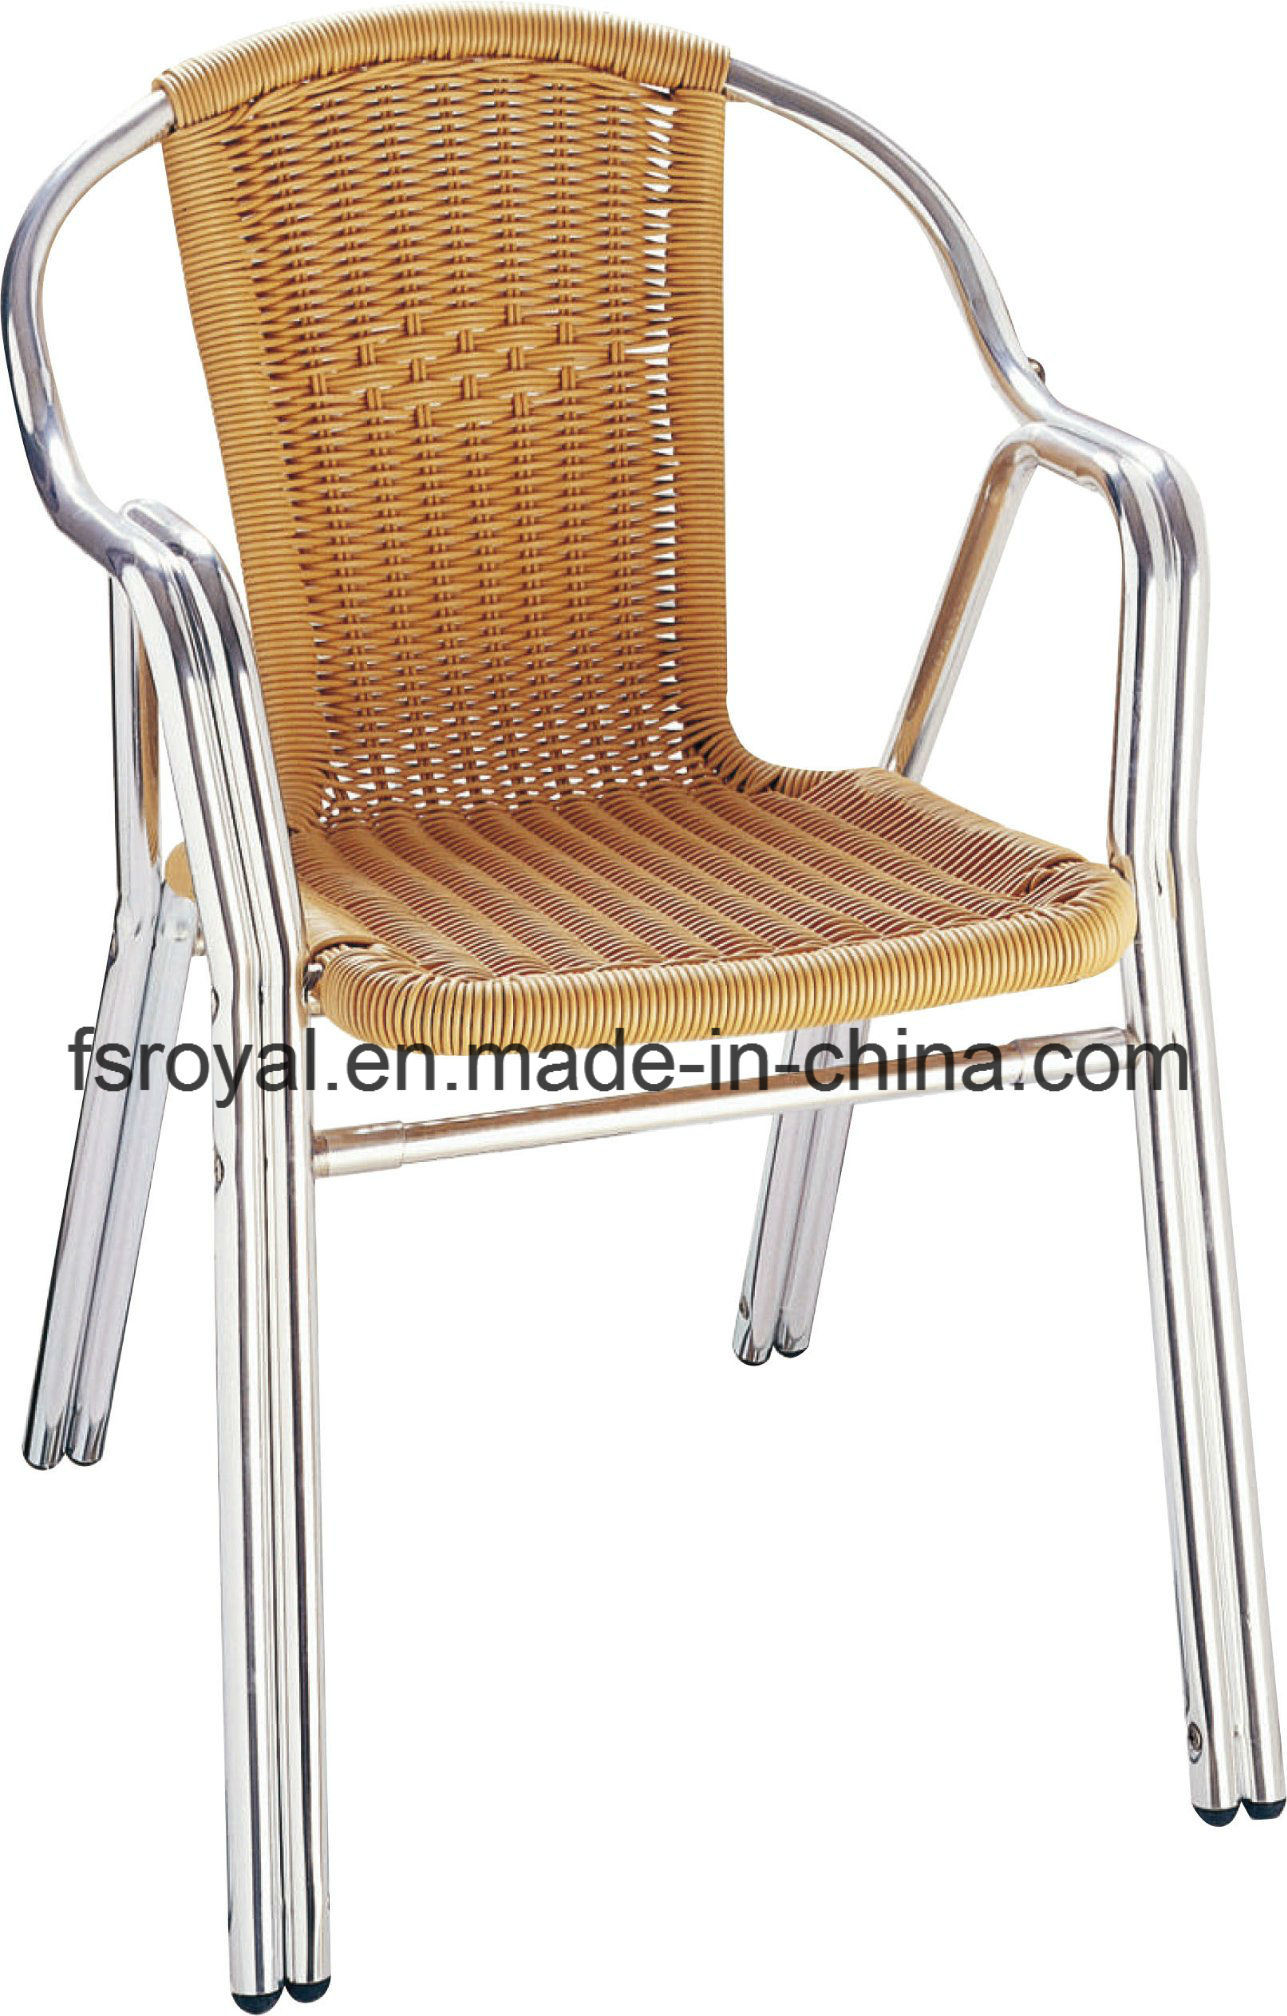 Best Commercial Outdoor Restaurant Chair